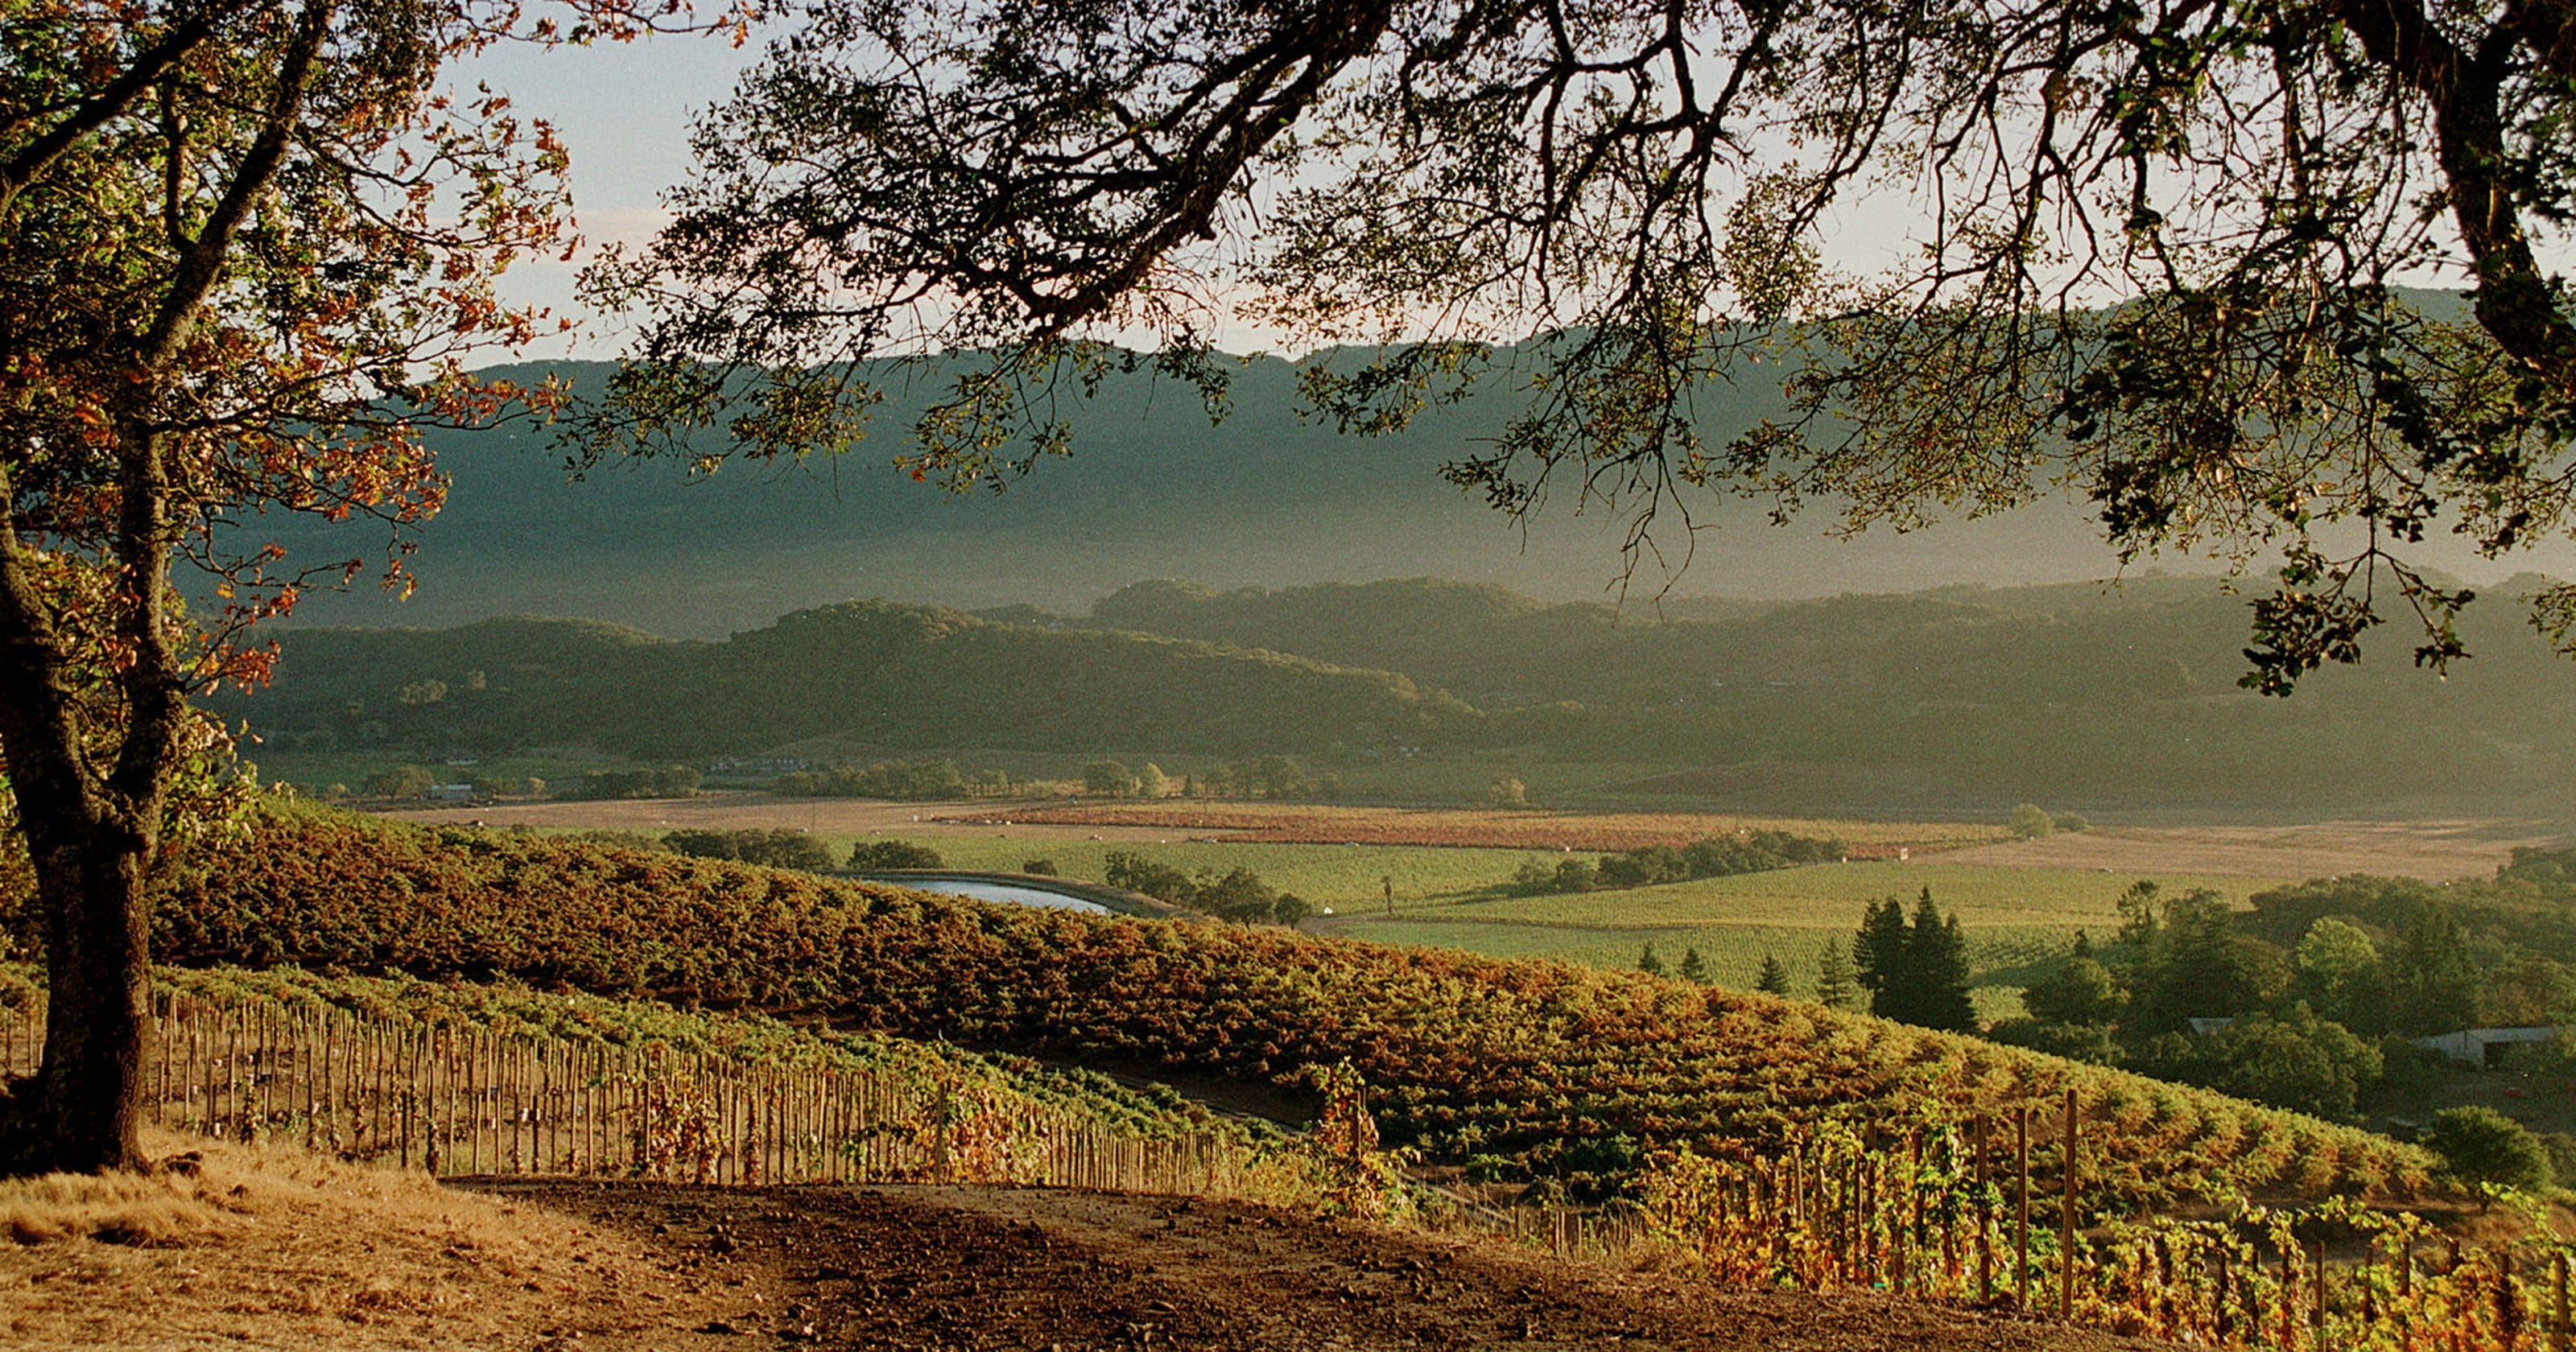 California wine country: Sonoma County